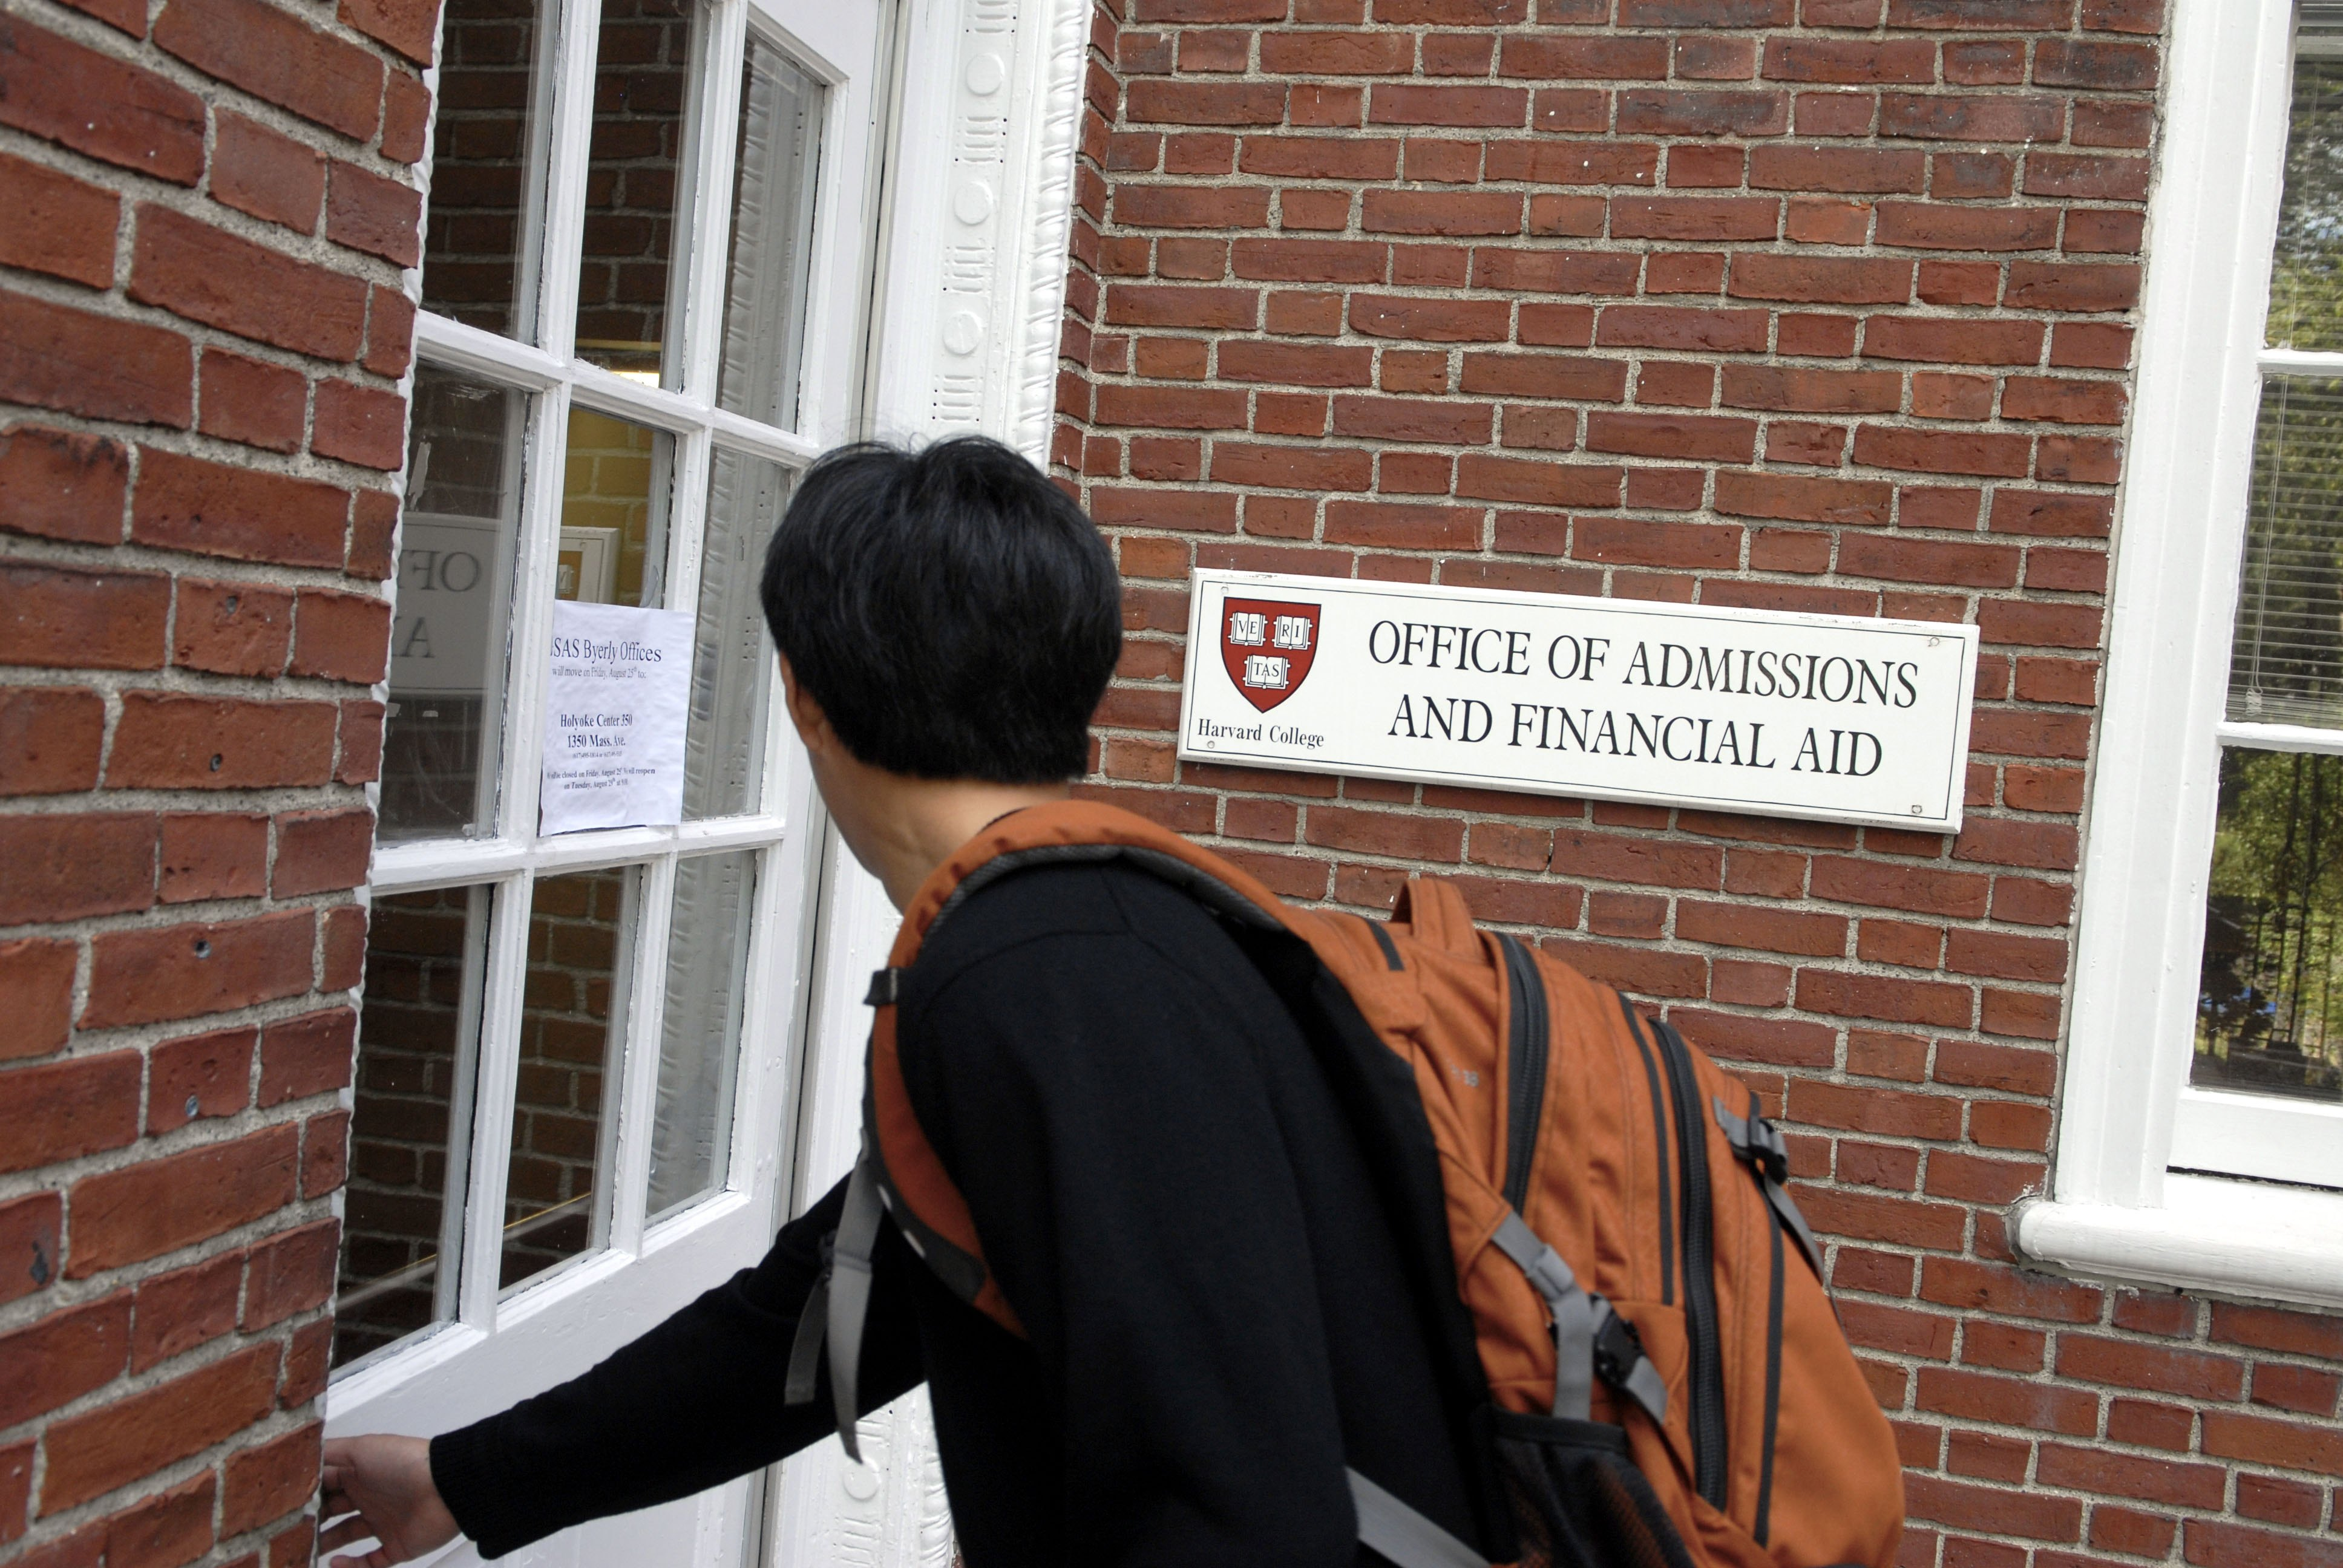 Asian-Americans Sue Harvard for Admissions-Based Discrimination